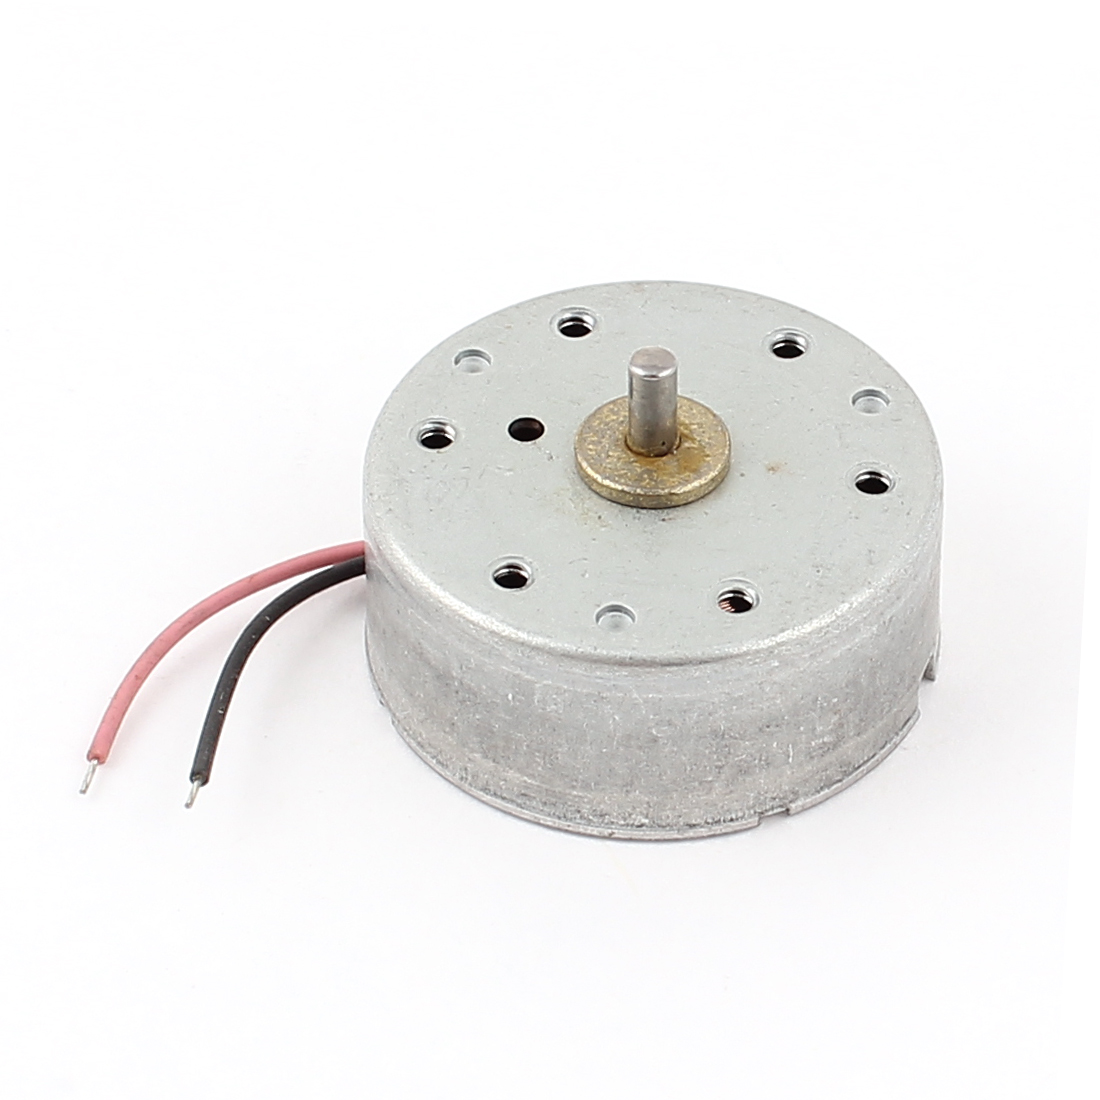 DC 1.5-4.5V 3200RPM 10x24mm Electric Mini Motor Replacement for CD DVD Player